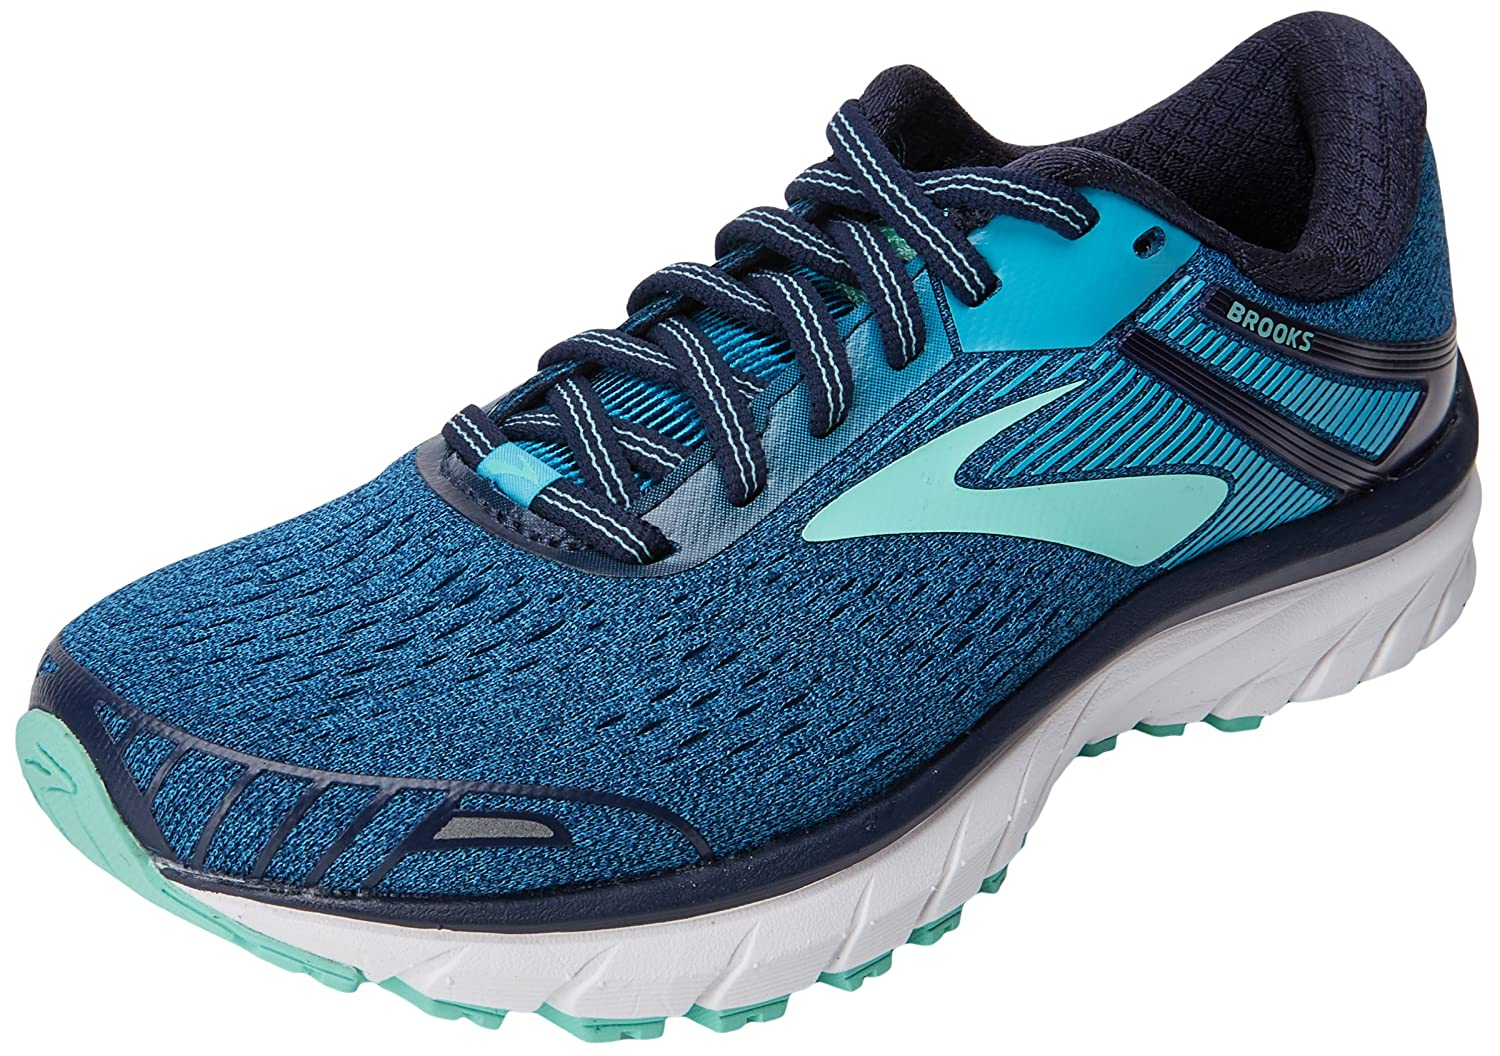 Brooks Womens Adrenaline GTS 18 B072BNFQQT 10.5 AA US|Navy/Teal/Mint